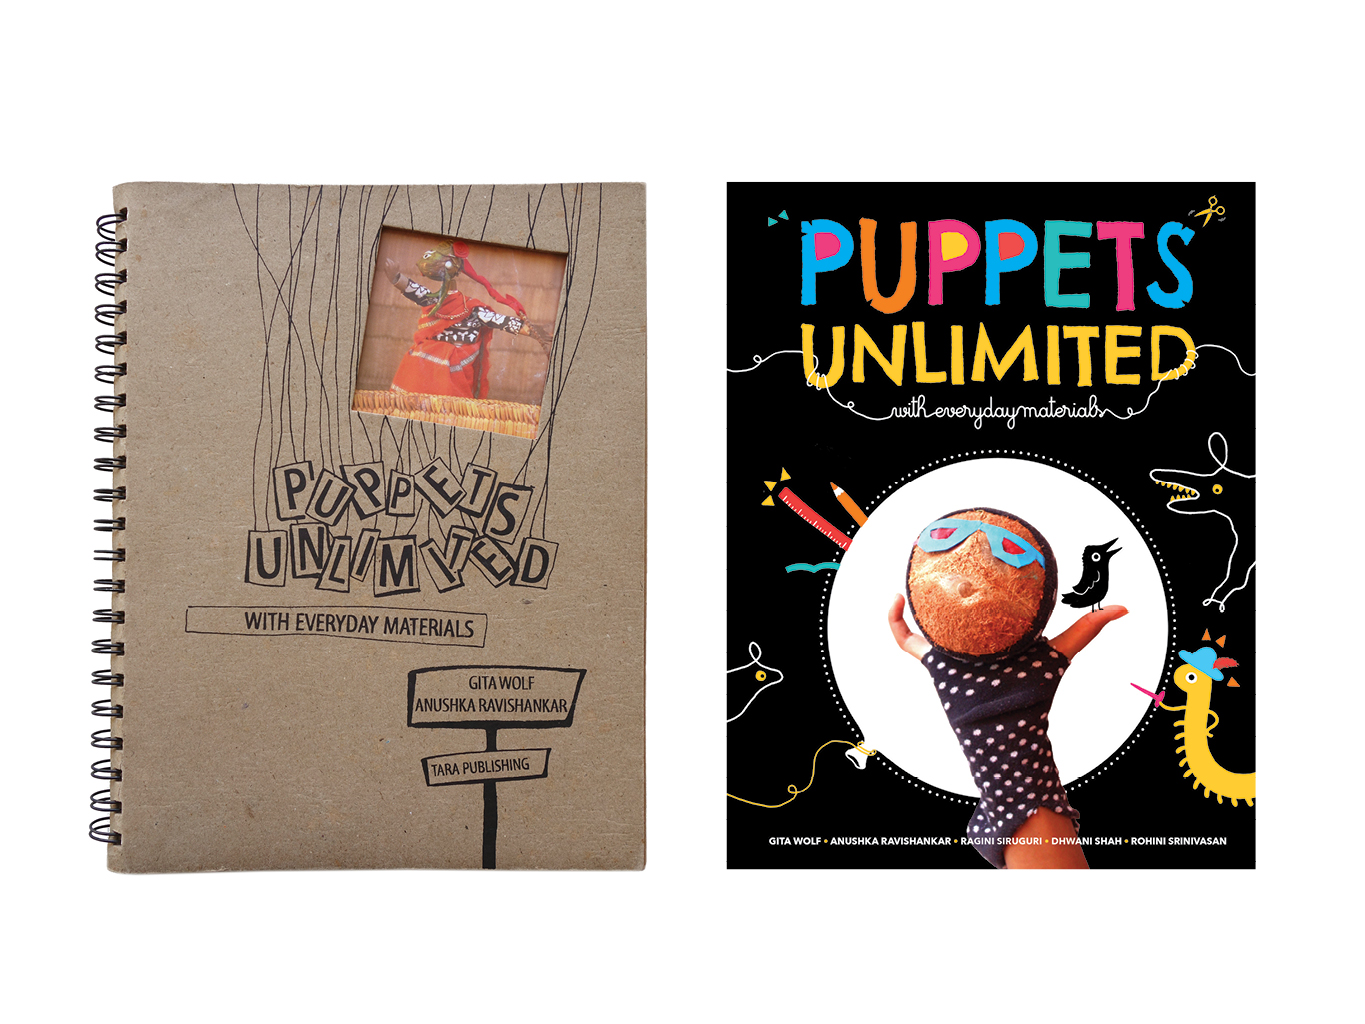 Puppets Unlimited with Everyday Materials, Tara Books, 1998 (First edition, left) and 2019 (Second edition, right)